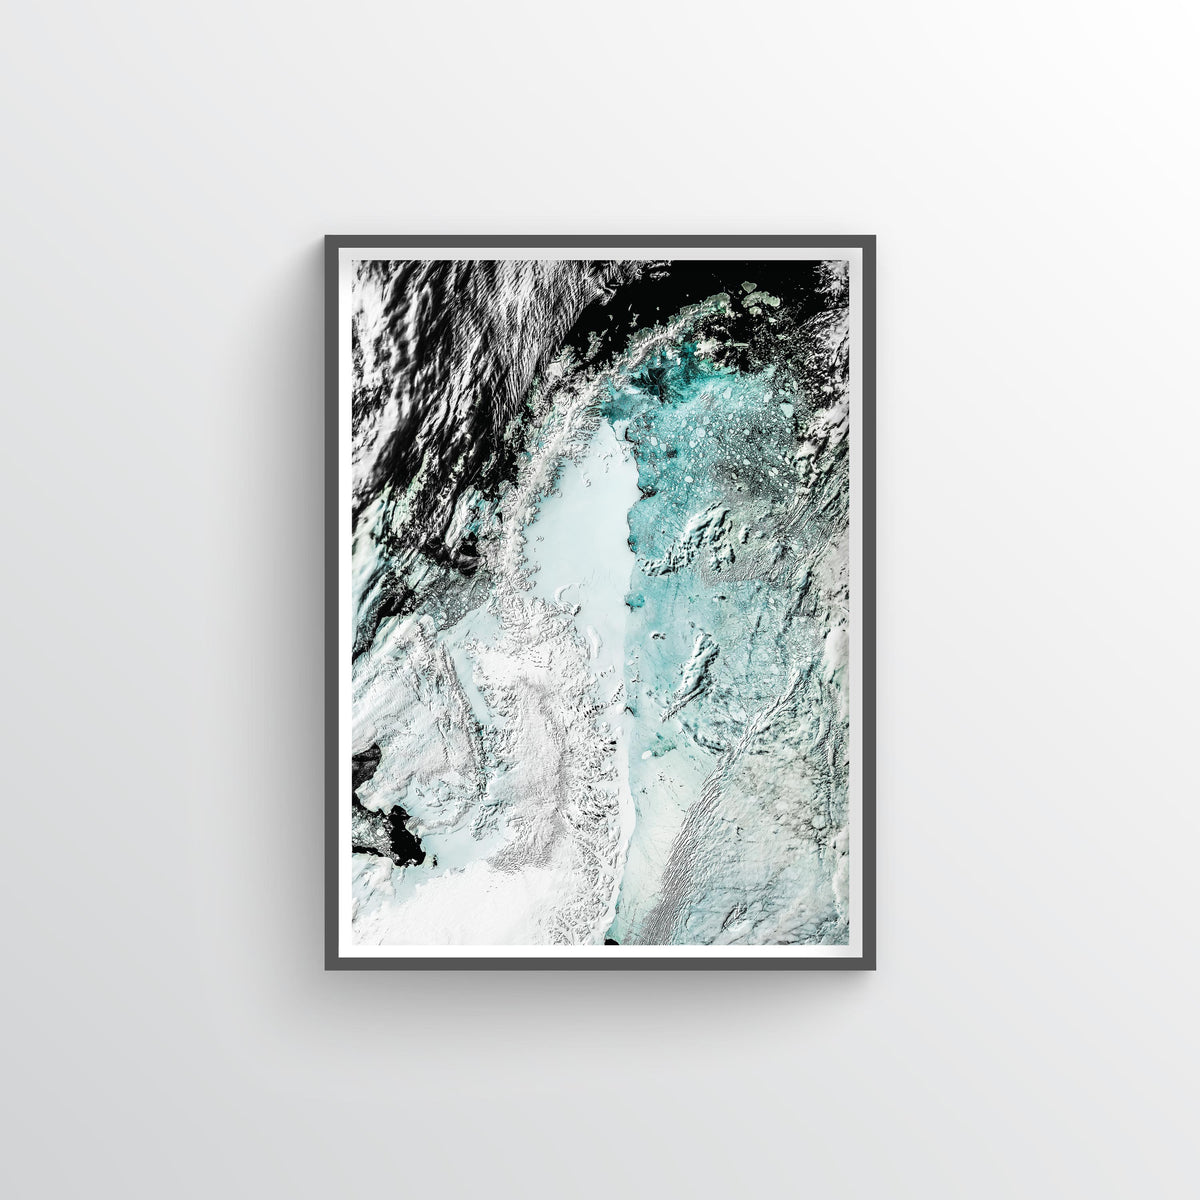 Weddell Sea - Earth Photography Fine Art Print